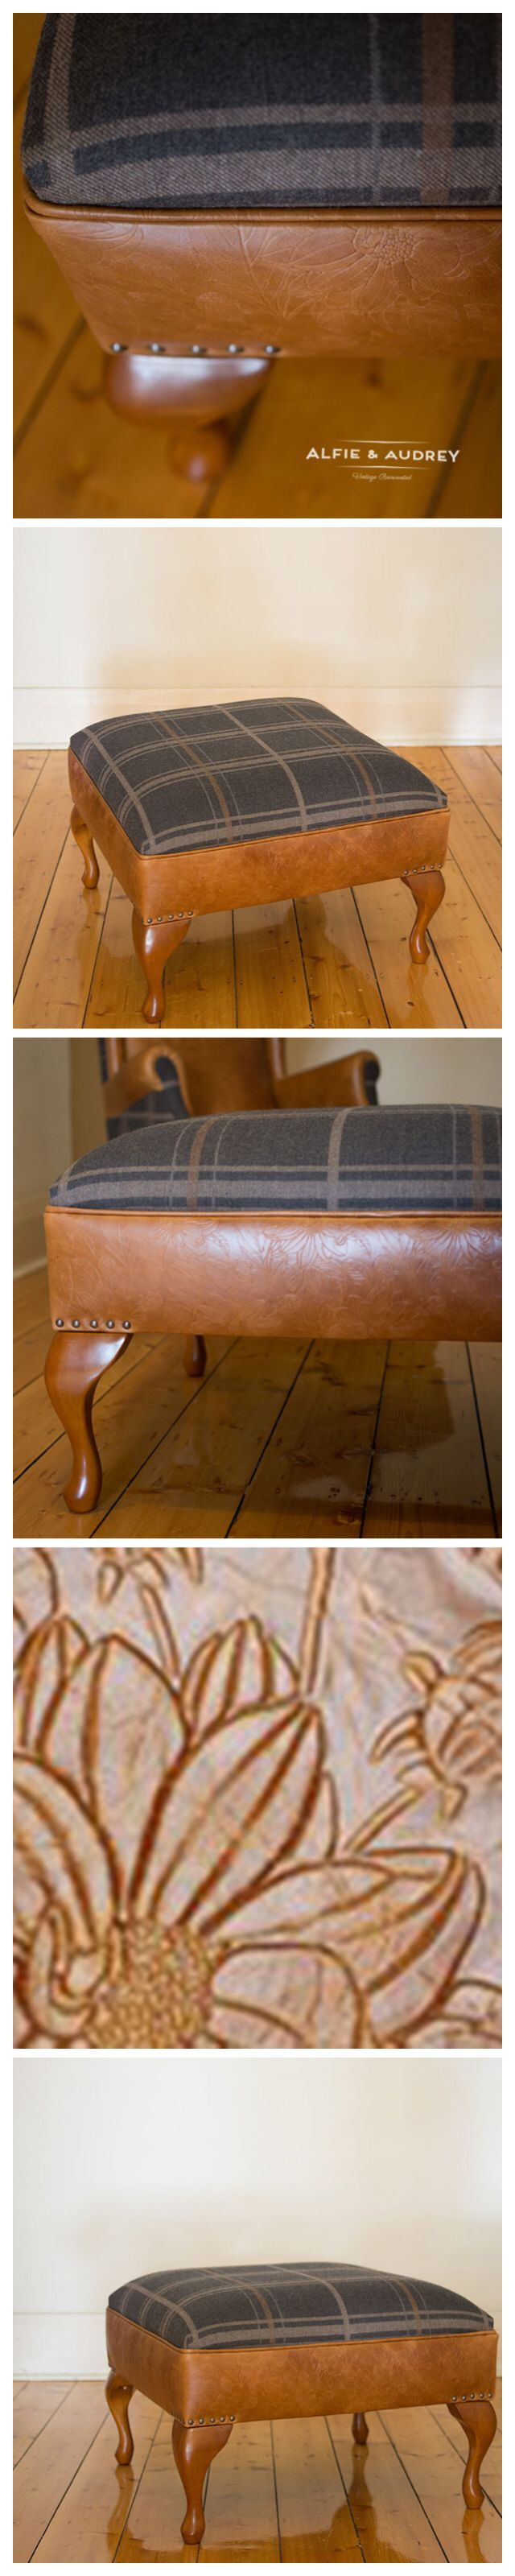 Worthley Collection large ottoman available @ www.alfieandaudrey.com.au